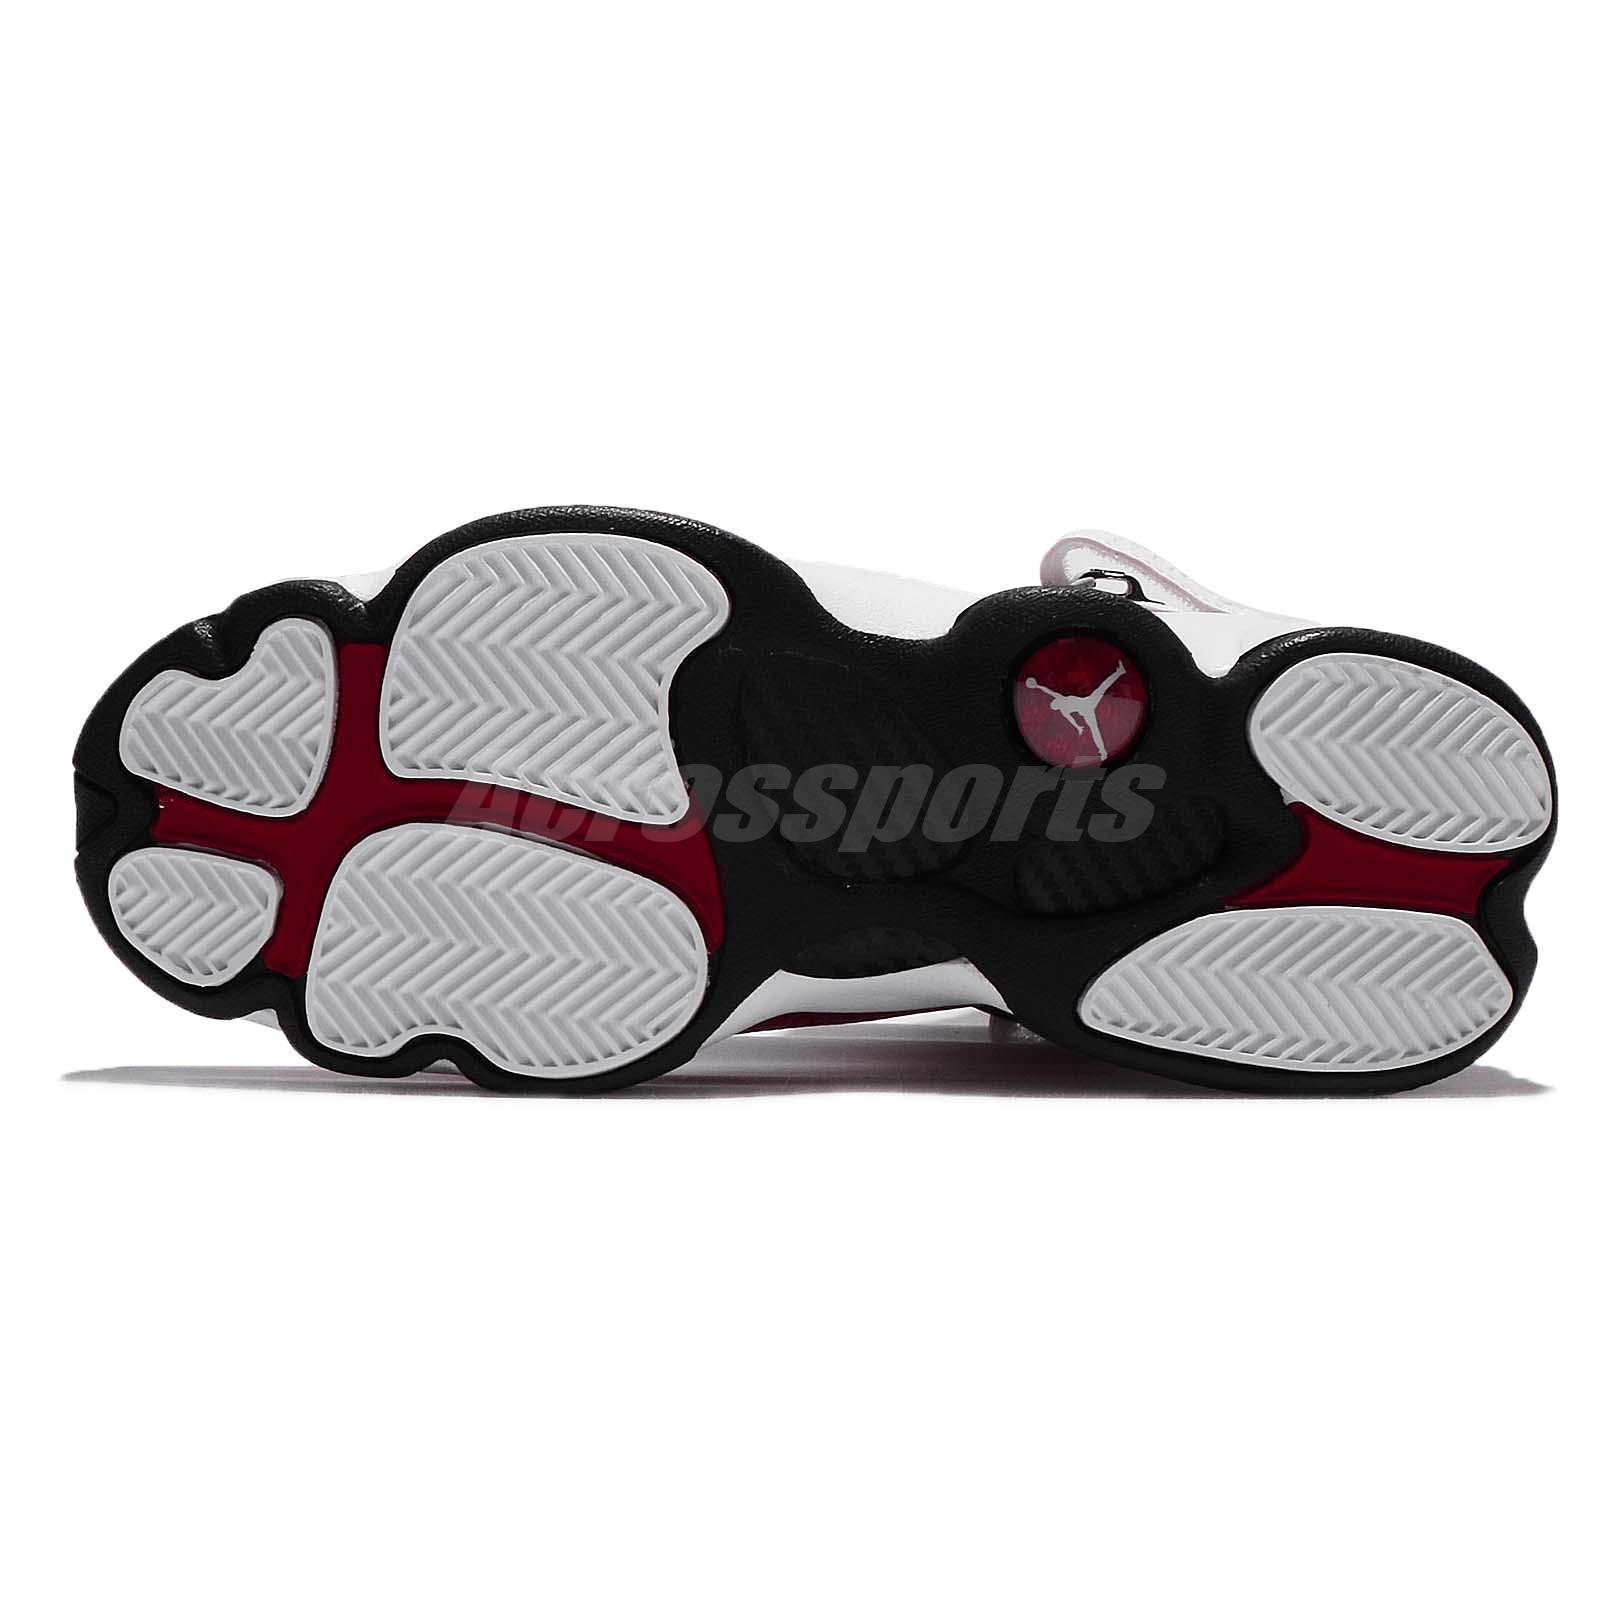 bb163e31e39435 ... coupon code you might also like. the jordan 6 rings aec83 8afc0